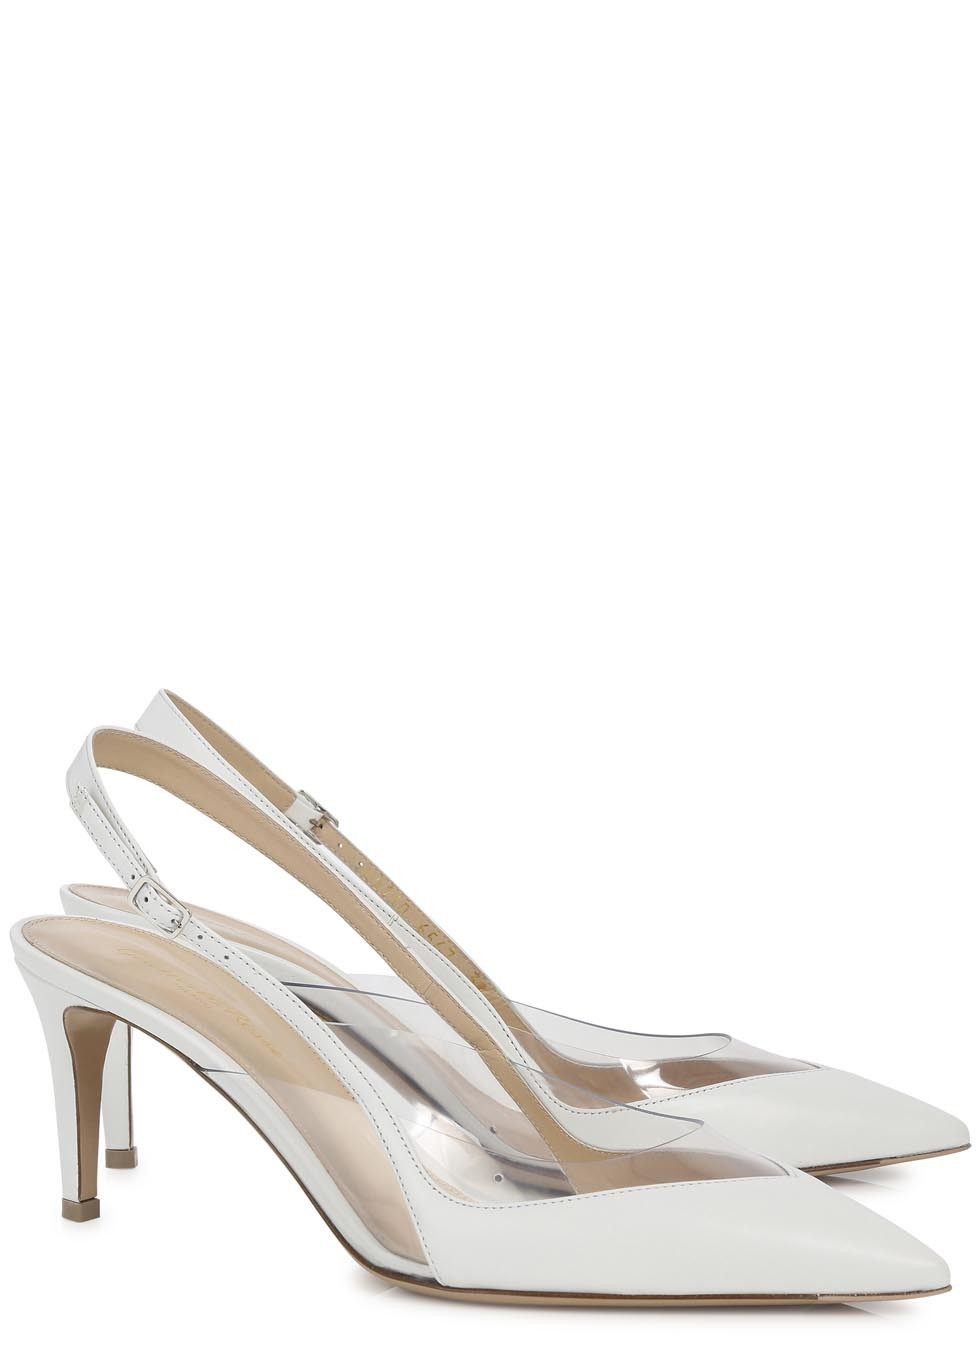 0701c601786 Gianvito Rossi White Perspex and Leather Slingback Pumps in White - Lyst